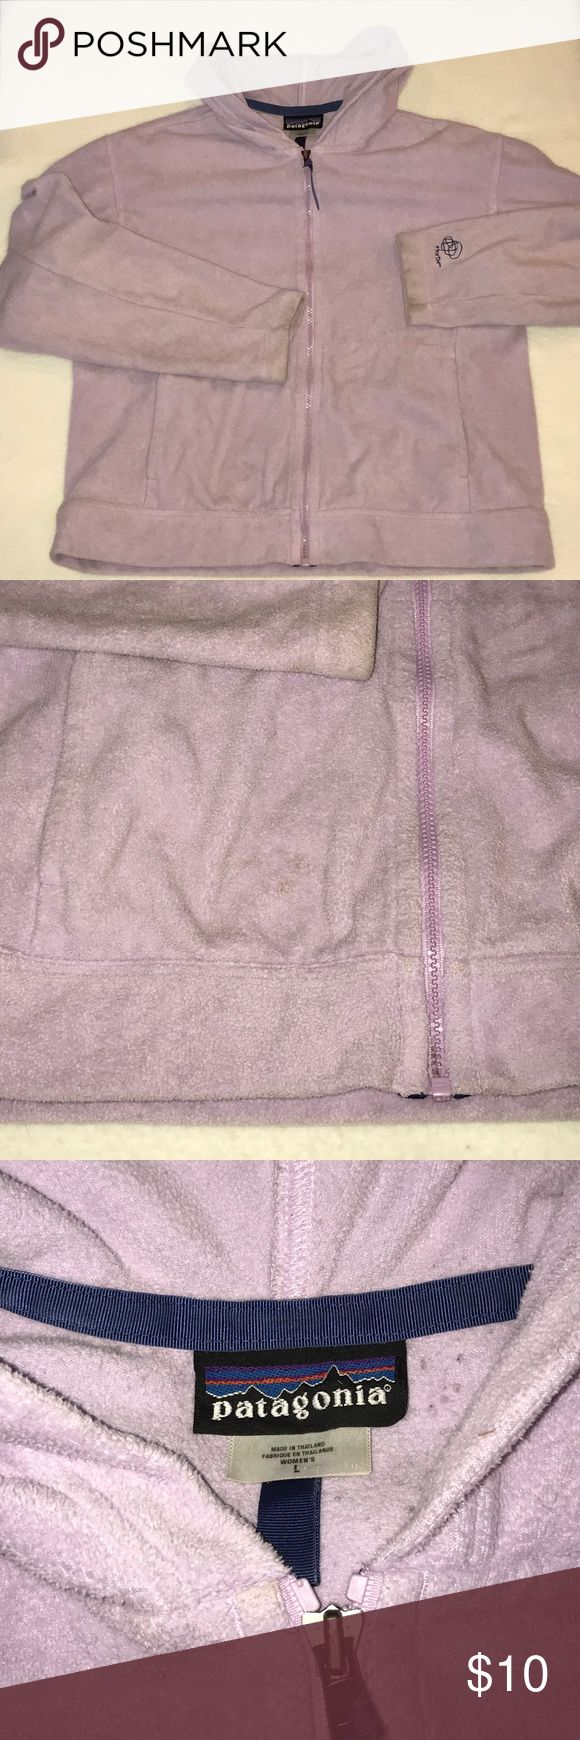 🎉SALE🎉Patagonia Hoodie Used/ worn condition. Price reflects the stains. Patagonia Sweaters